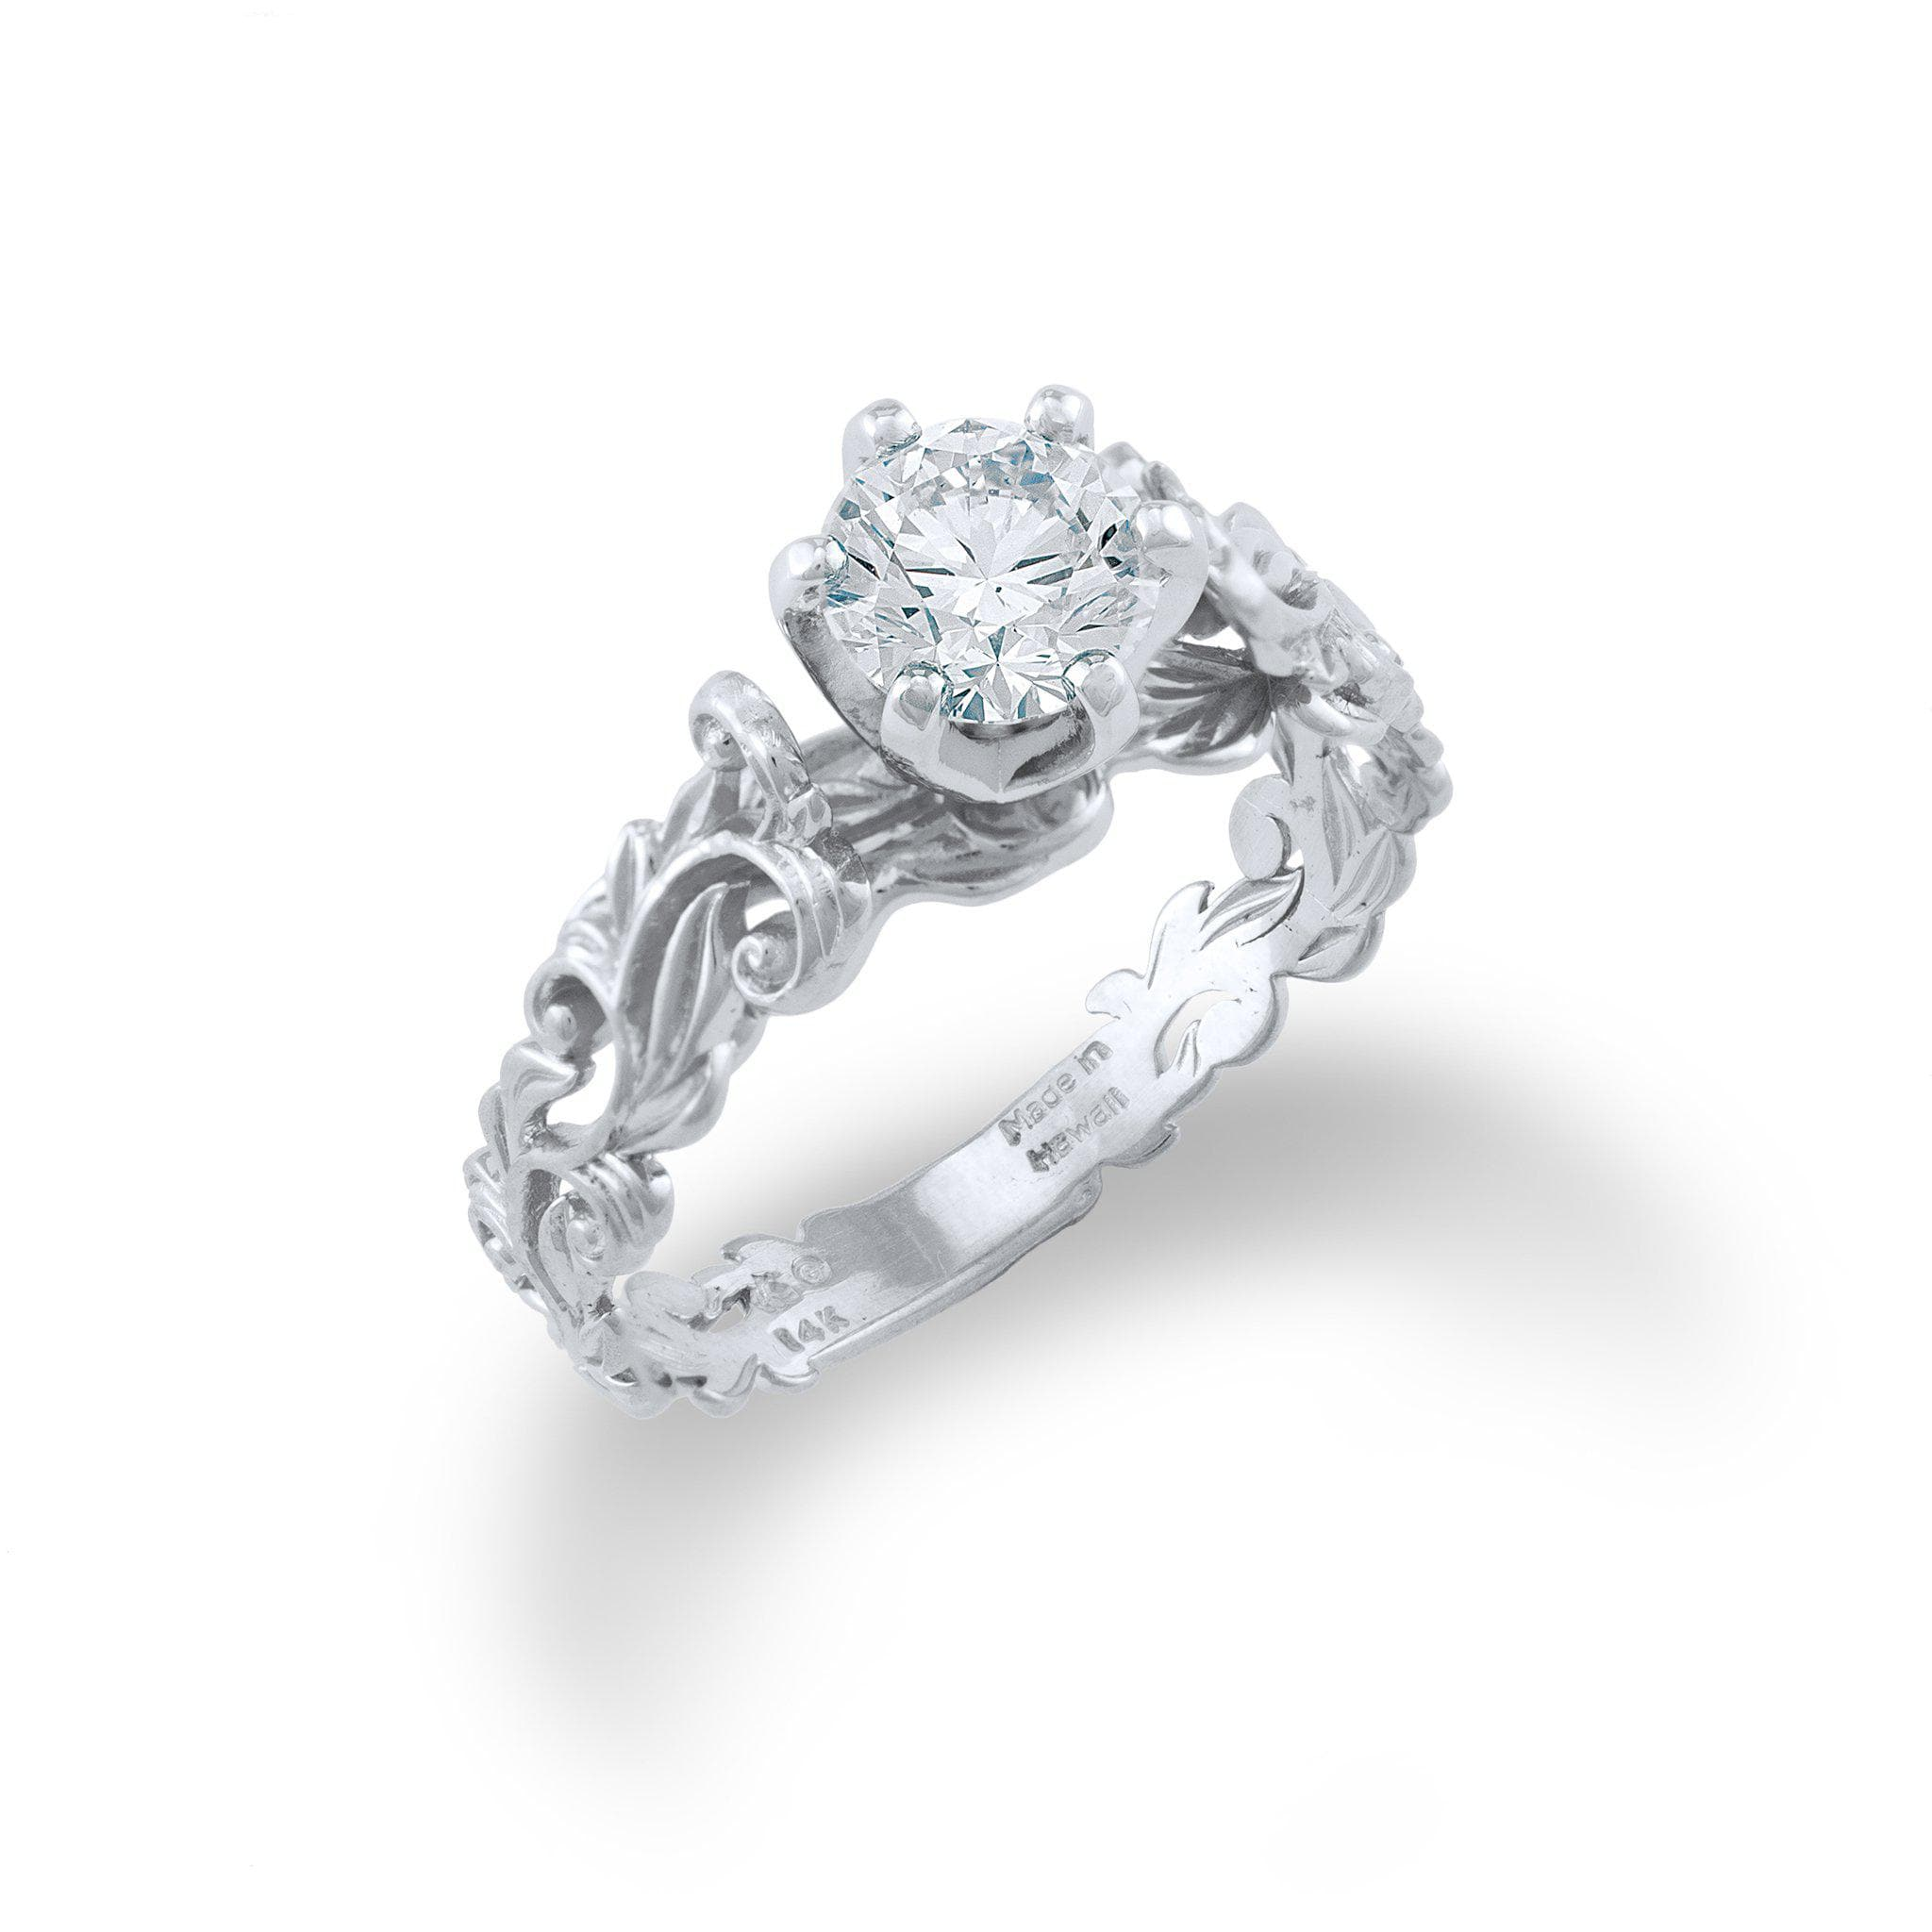 fave rings articles partner hint wedding your grooms our michael ocean favourite hill engagement inspired to